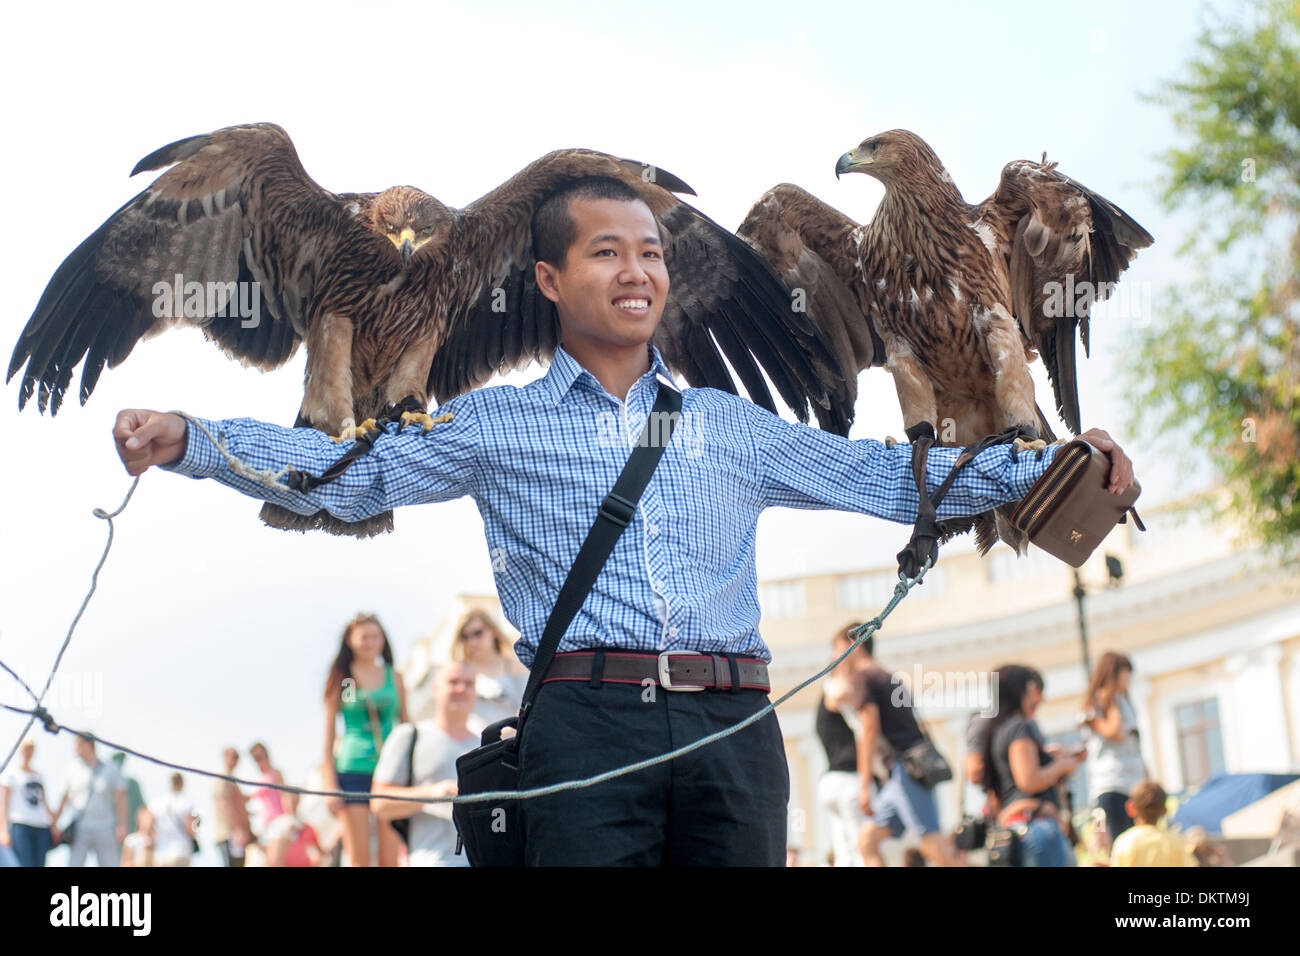 Tourist being photographed with eagles on the Potemkin Stairs in Odessa, Ukraine. - Stock Image